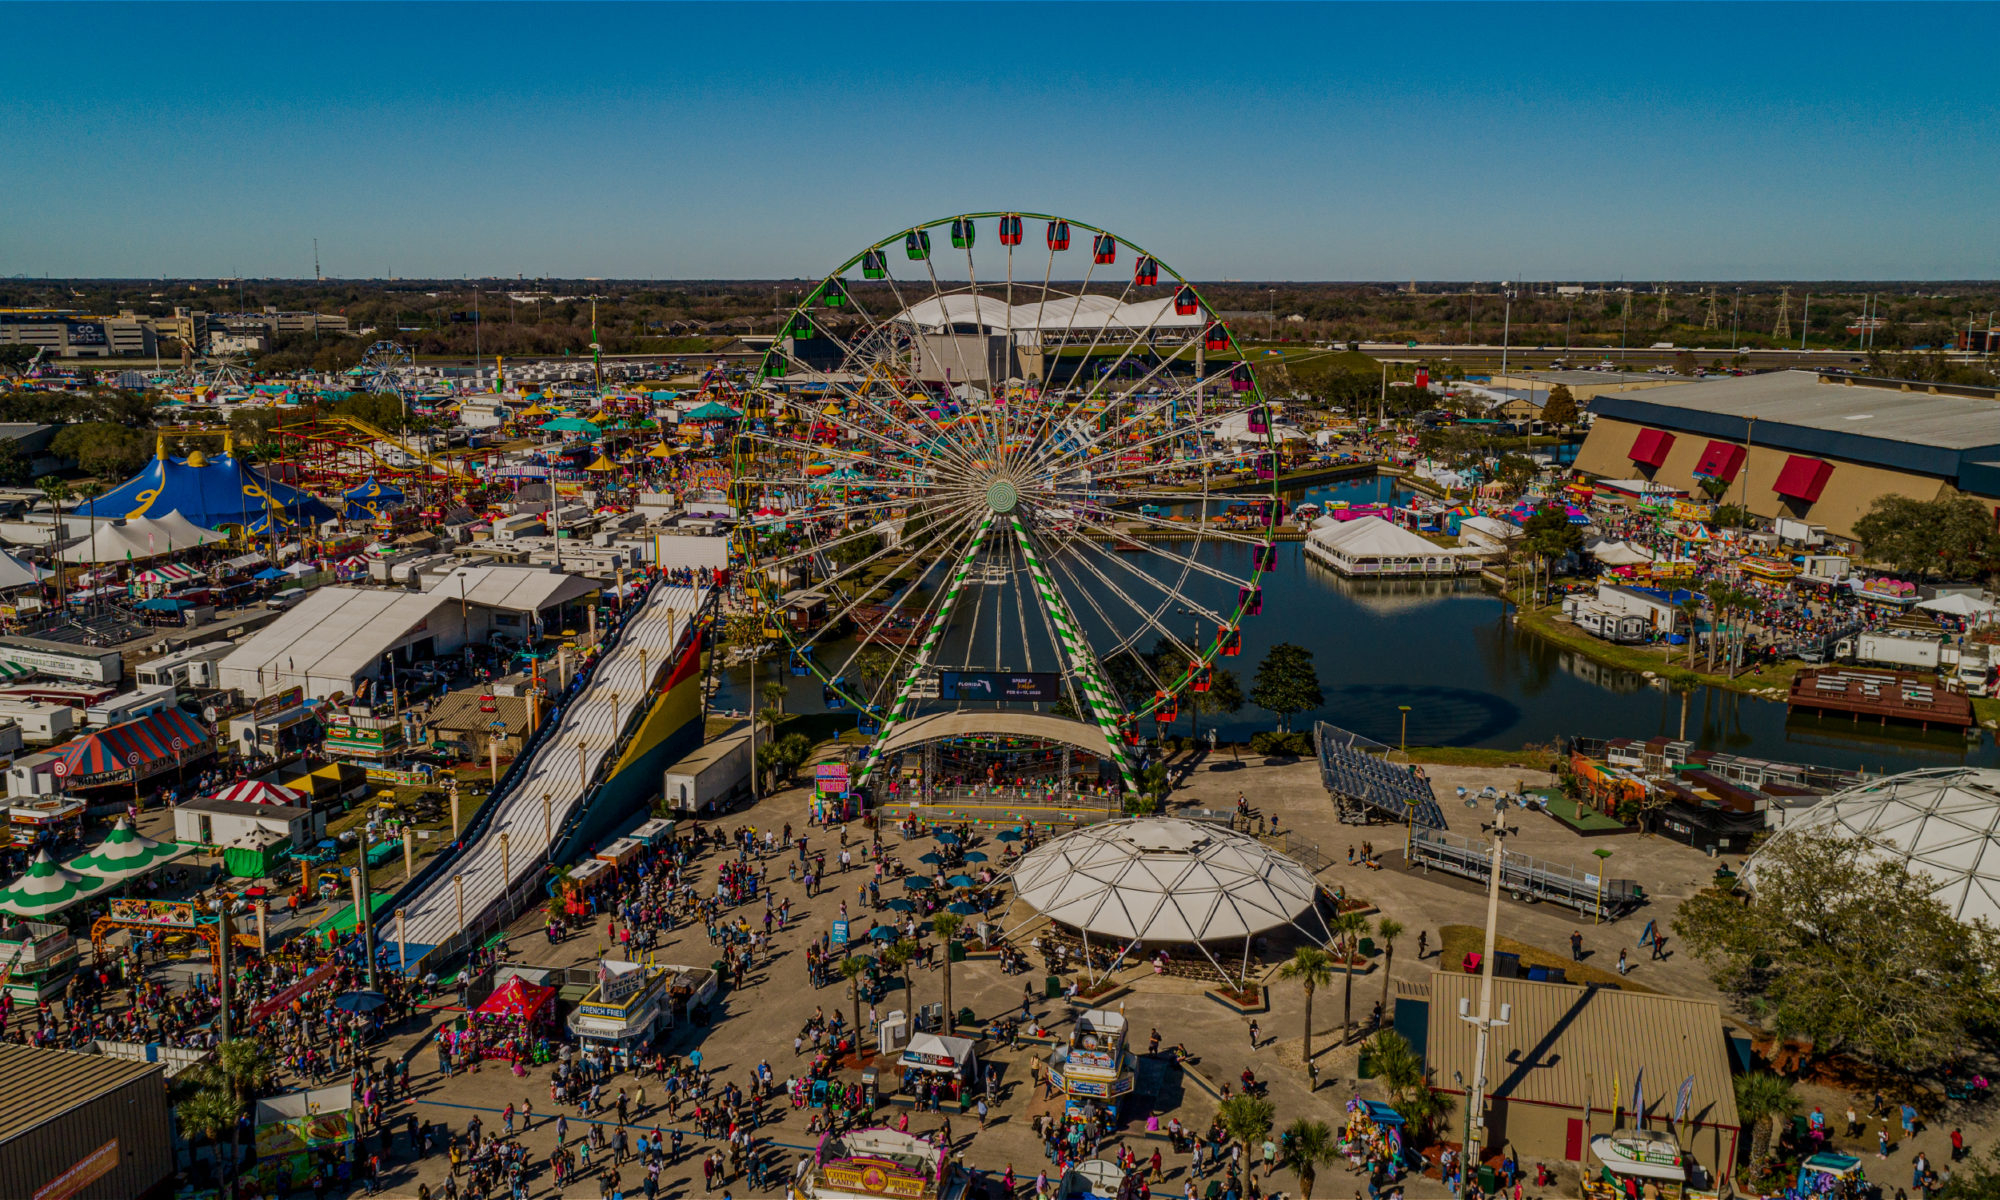 Florida State Fairgrounds: Find Your Fun In The Sun! for Florida State Fair Events Calendar